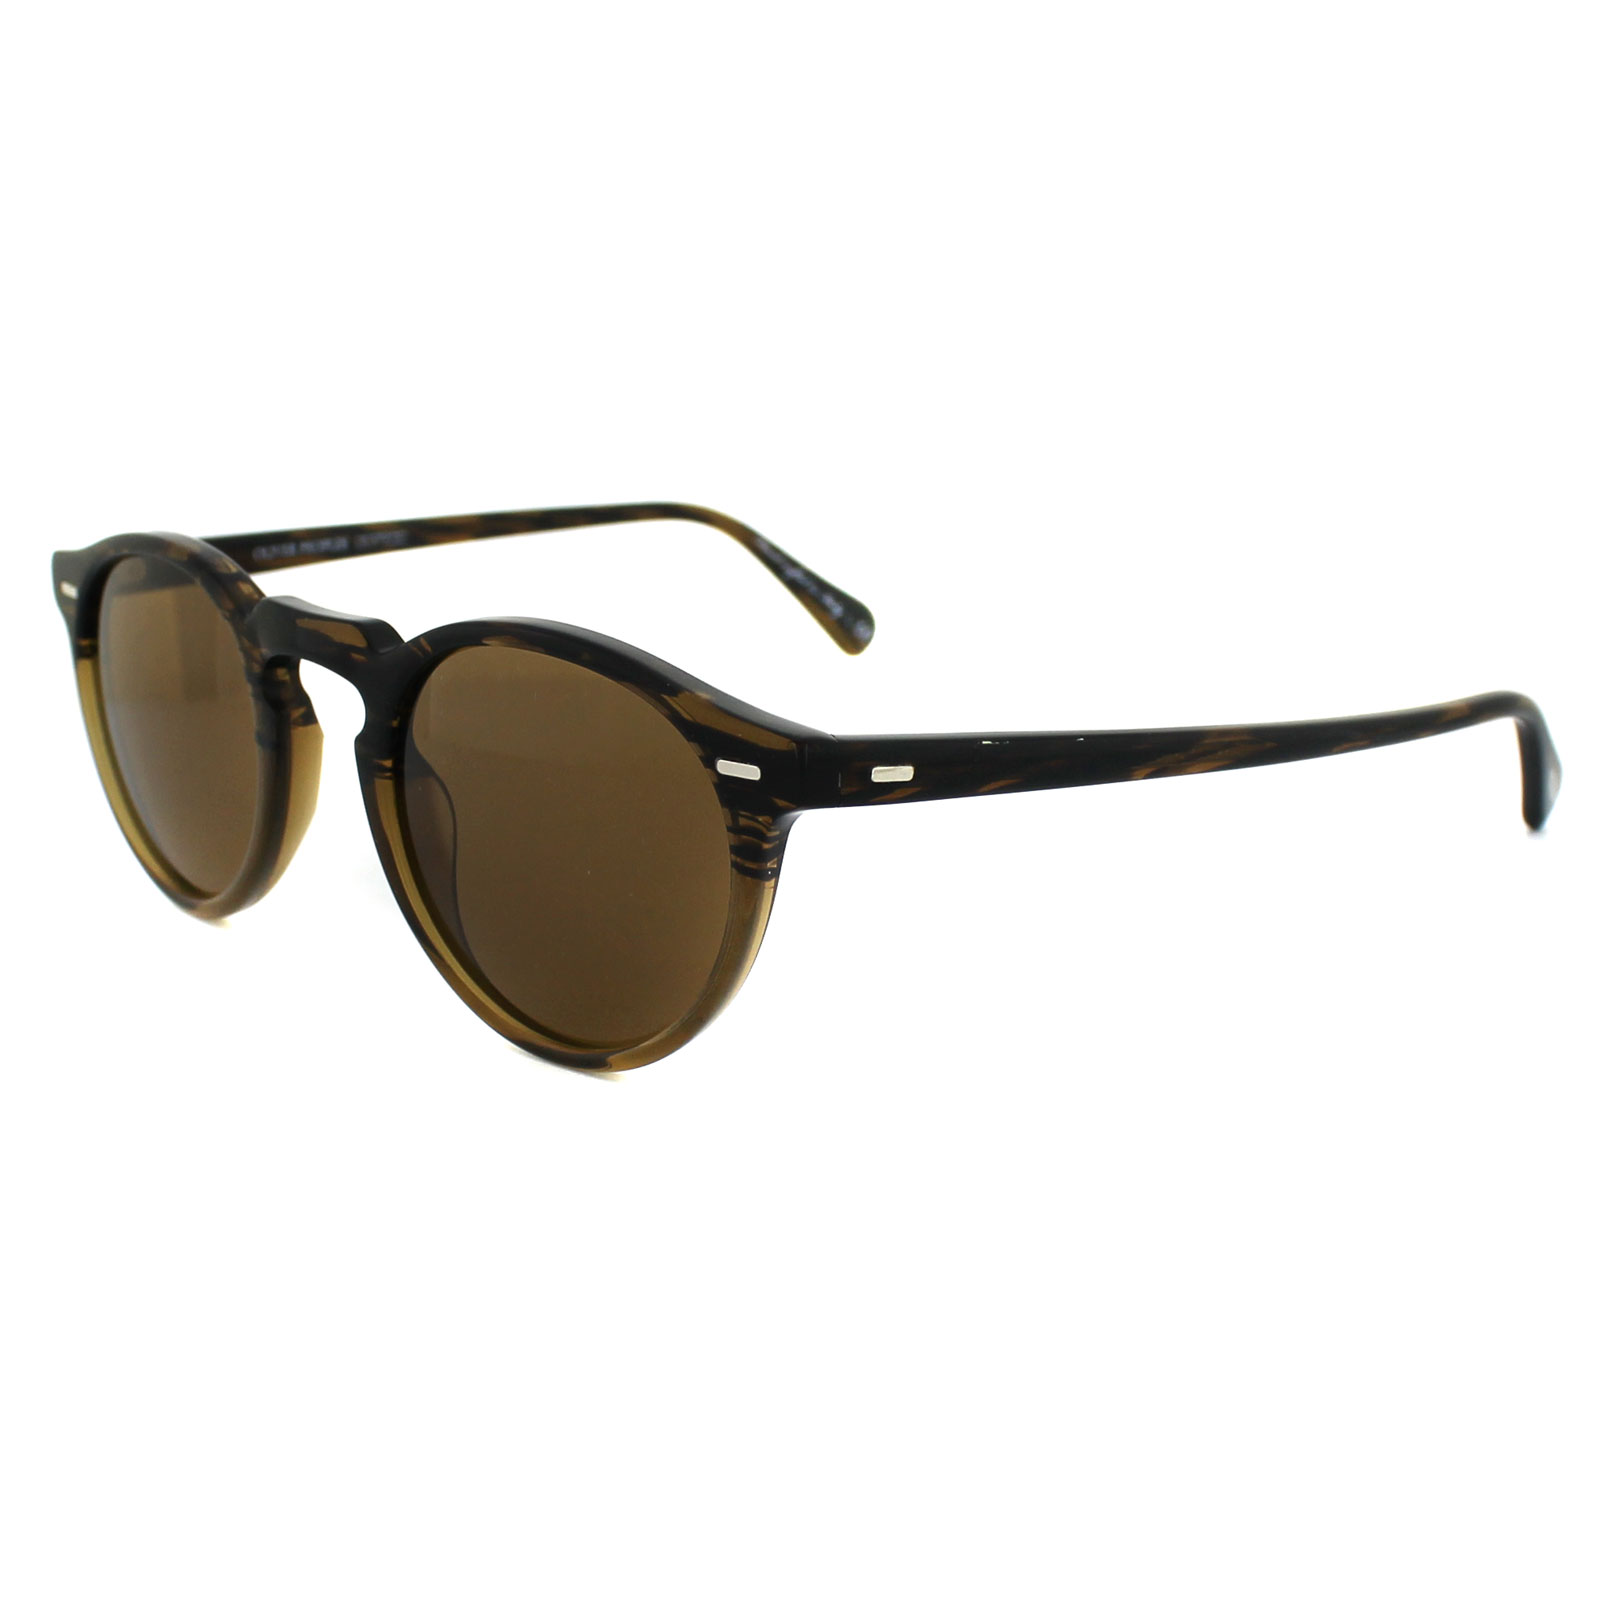 3e28603959 Cheap Oliver Peoples Gregory Peck 5217 Sunglasses - Discounted ...